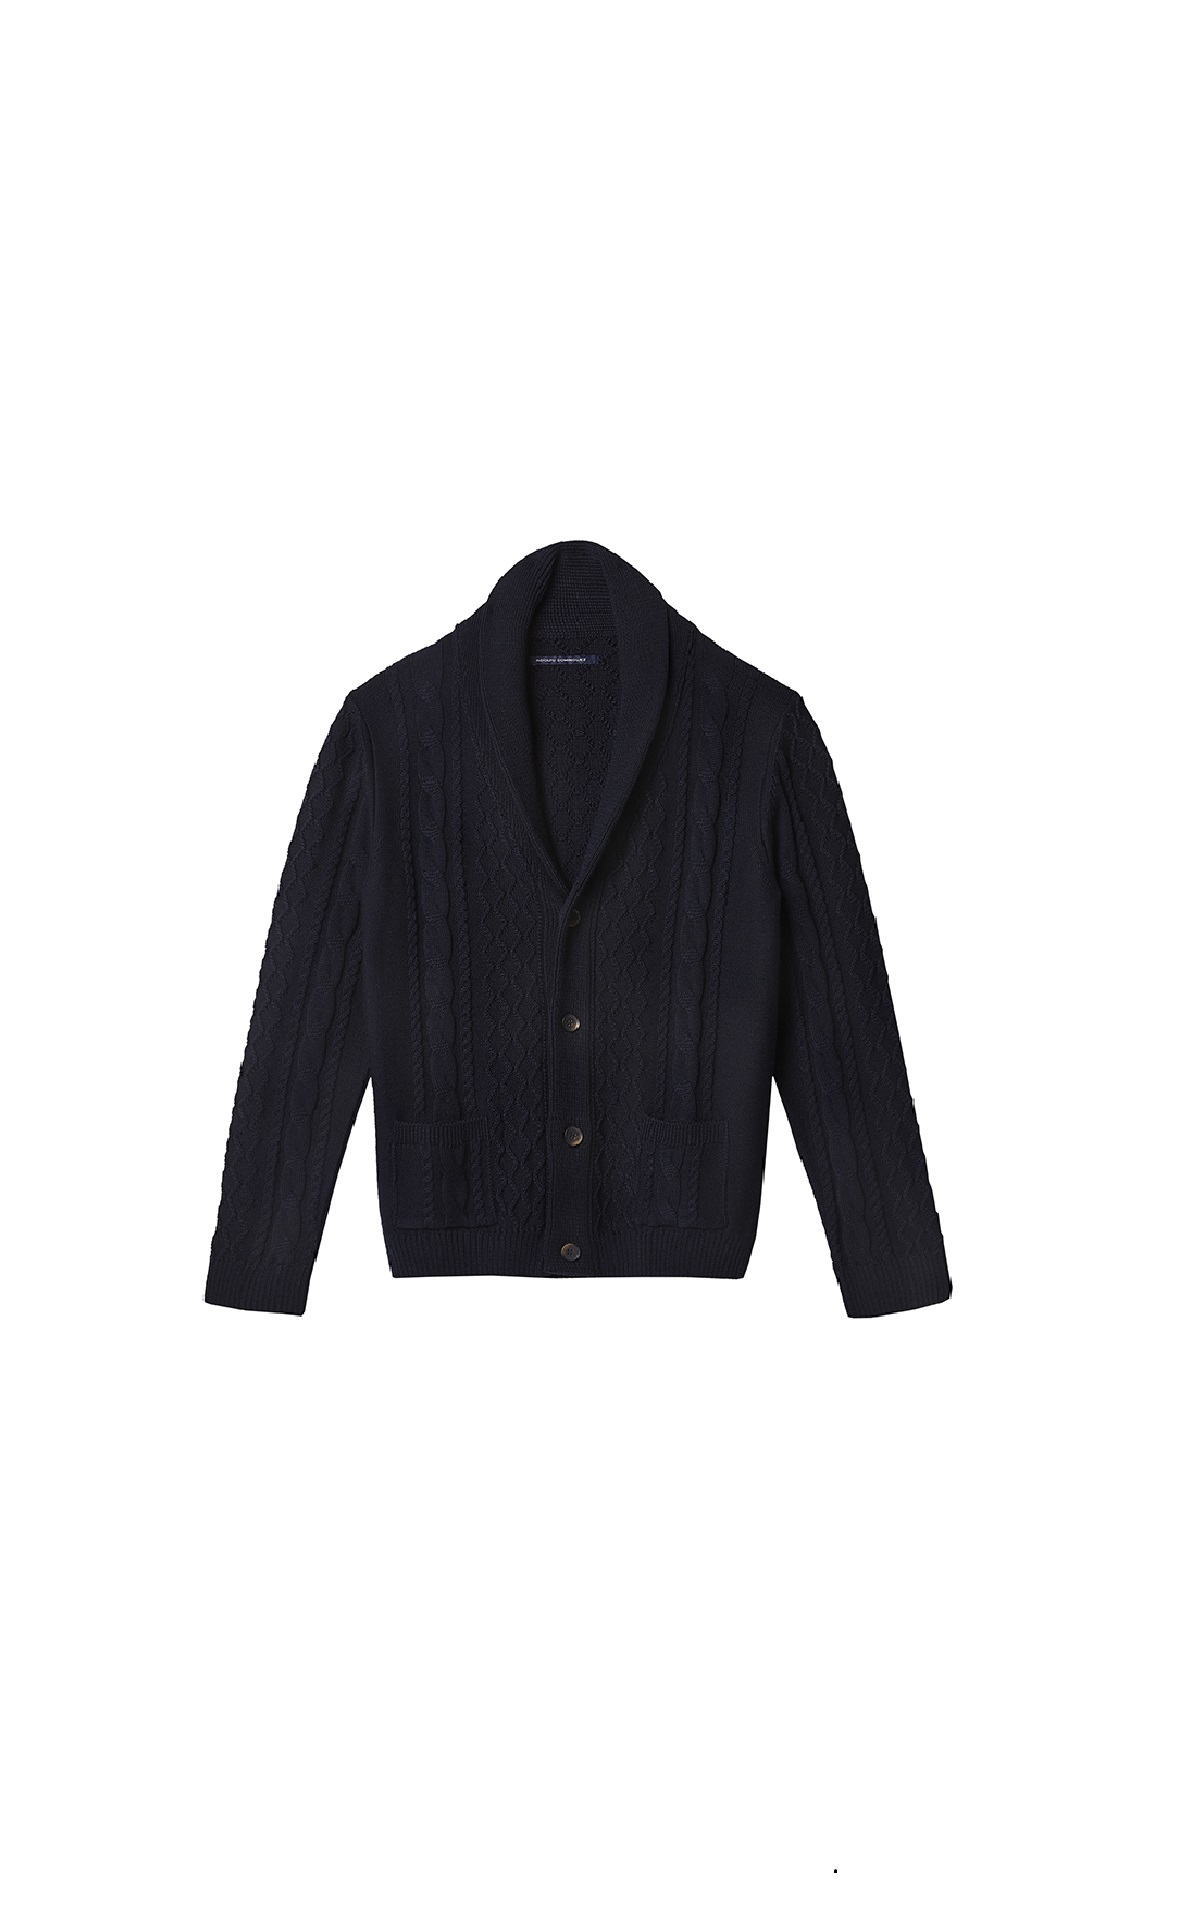 Navy blue sweater with buttons Adolfo Dominguez